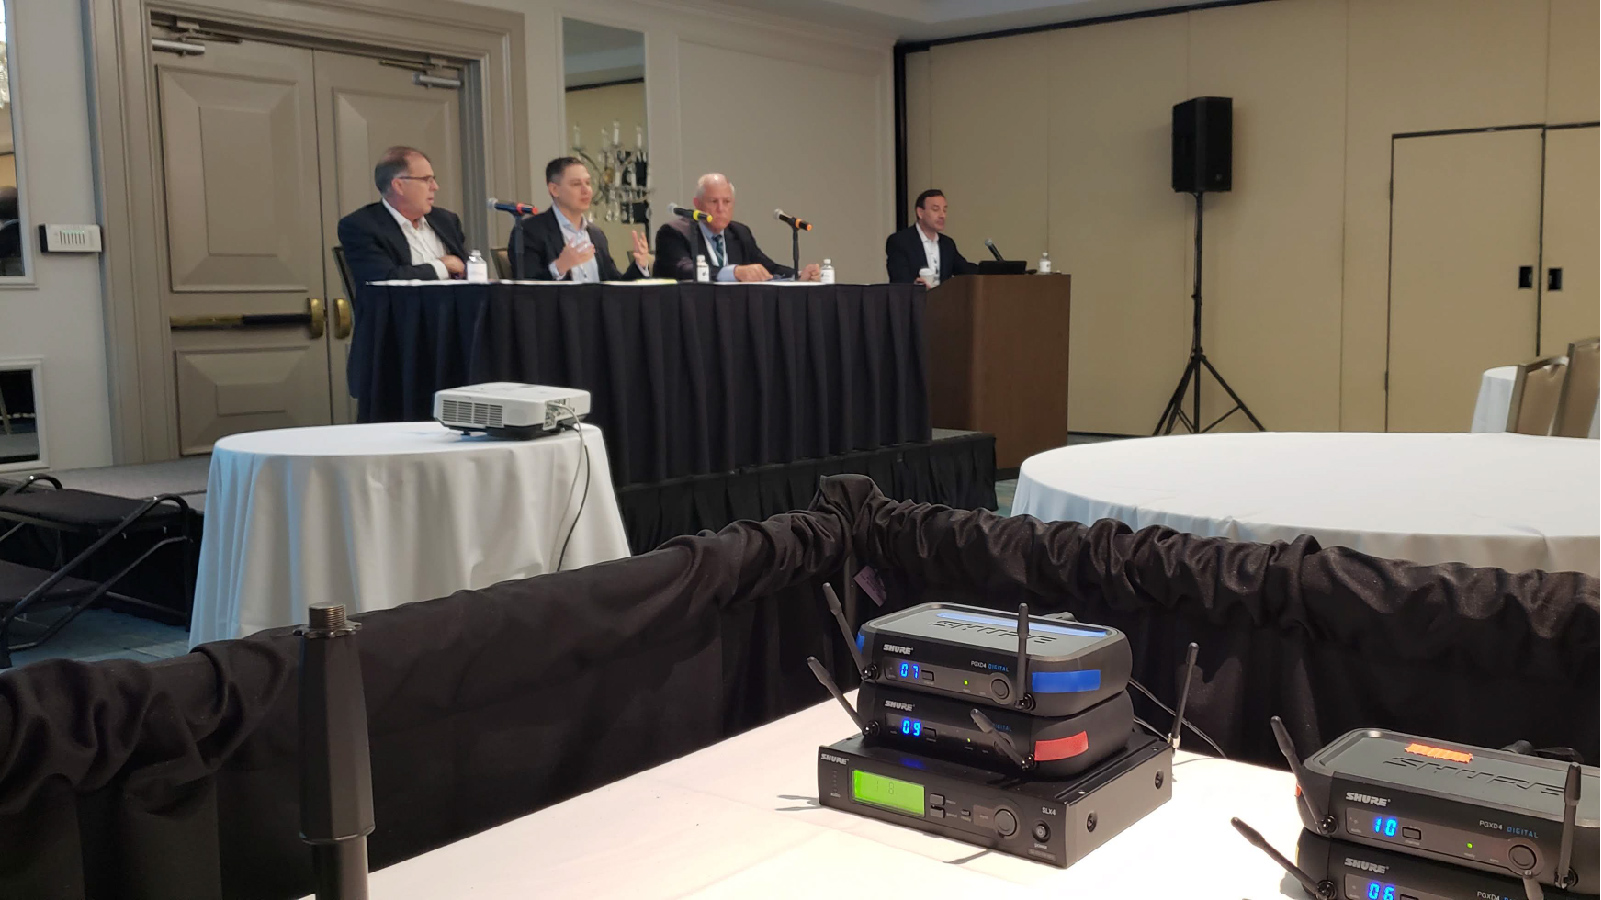 Panel-Discussion-Breakout-Session-Naples-FL.jpg